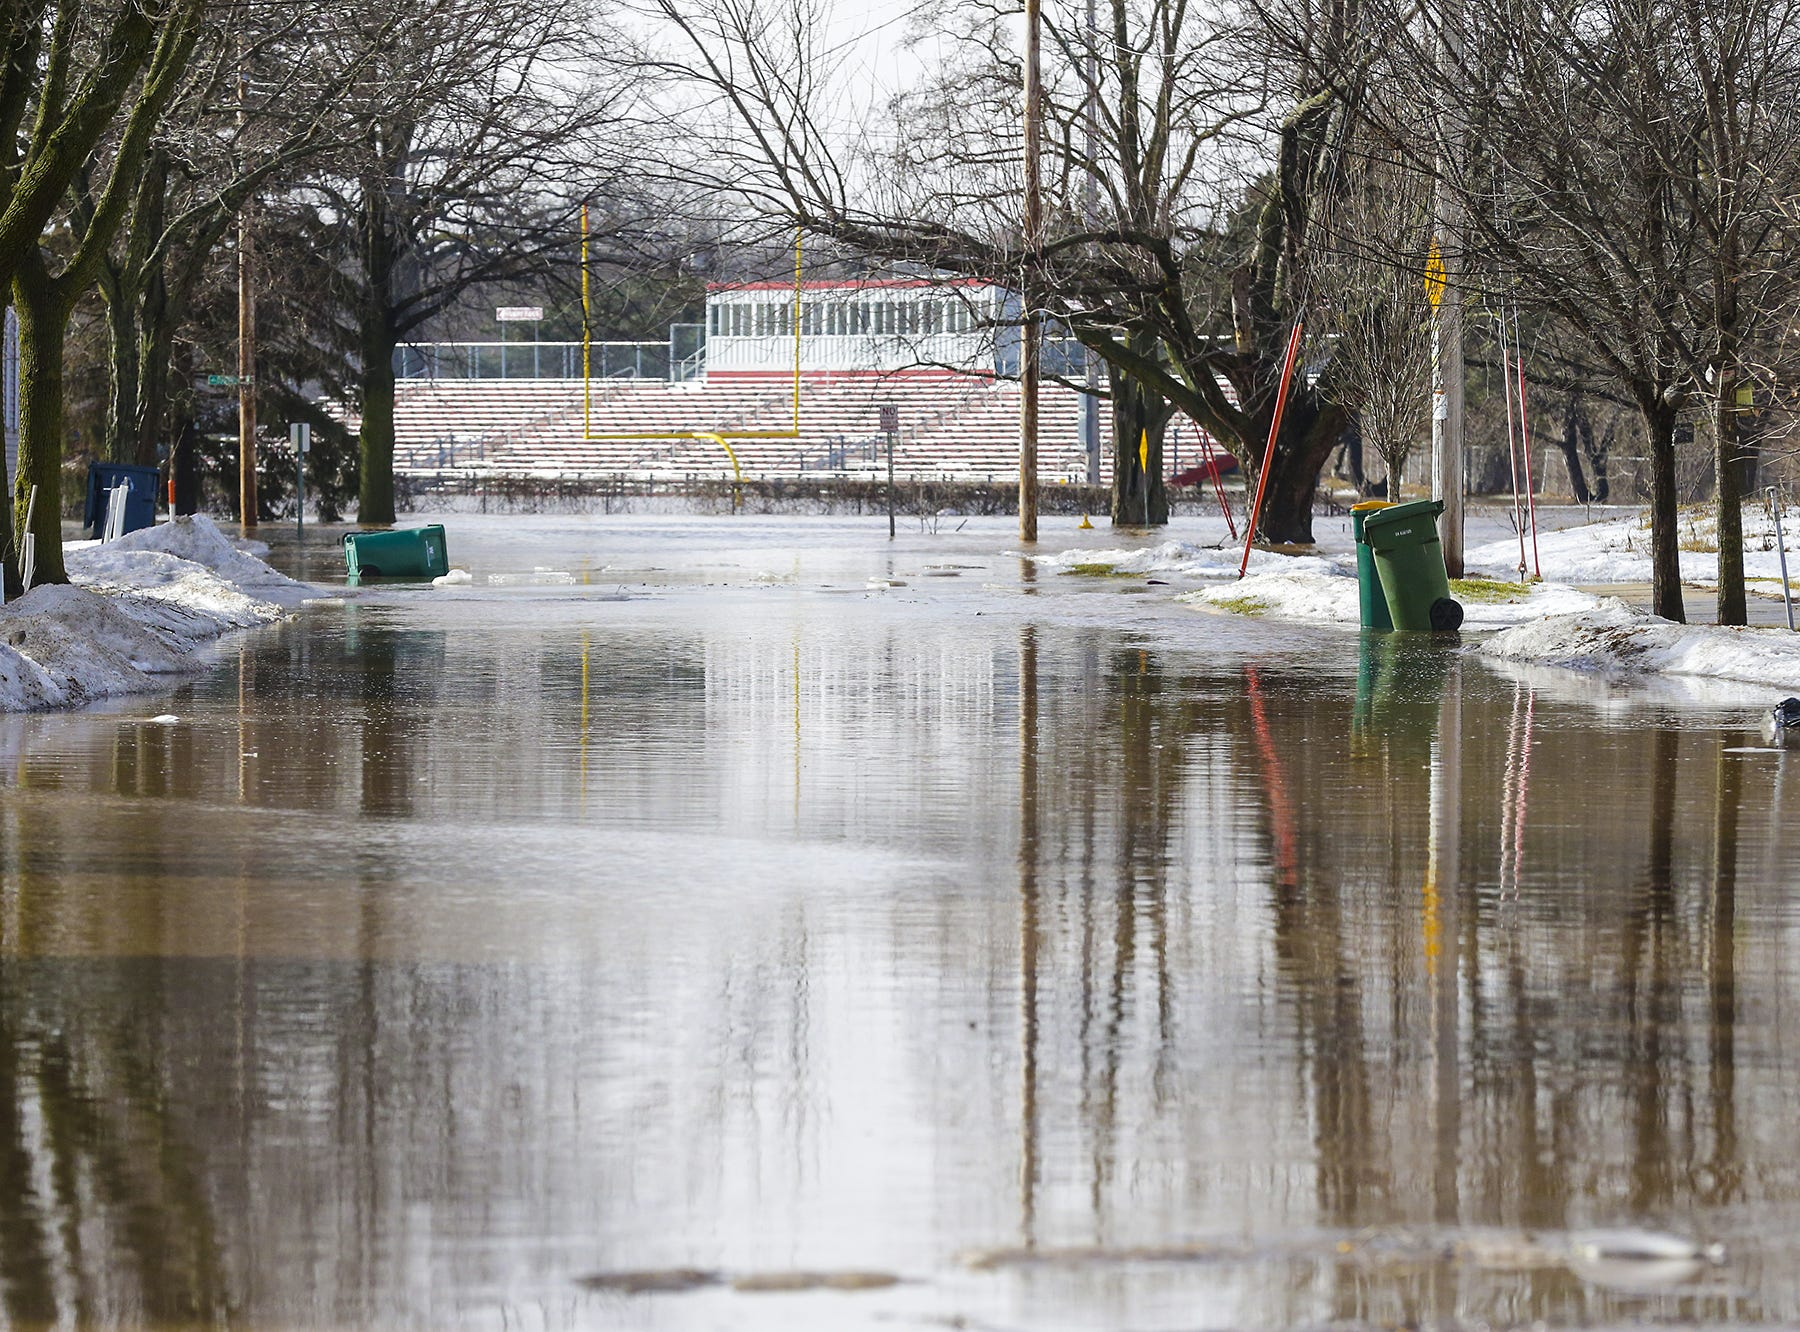 Fruth Field can be seen in the background Thursday, March 14, 2019 of a flooded Oak Street in Fond du Lac, Wis. Ice jams on the east branch of the Fond du Lac River caused localized flooding problems in the city. Doug Raflik/USA TODAY NETWORK-Wisconsin